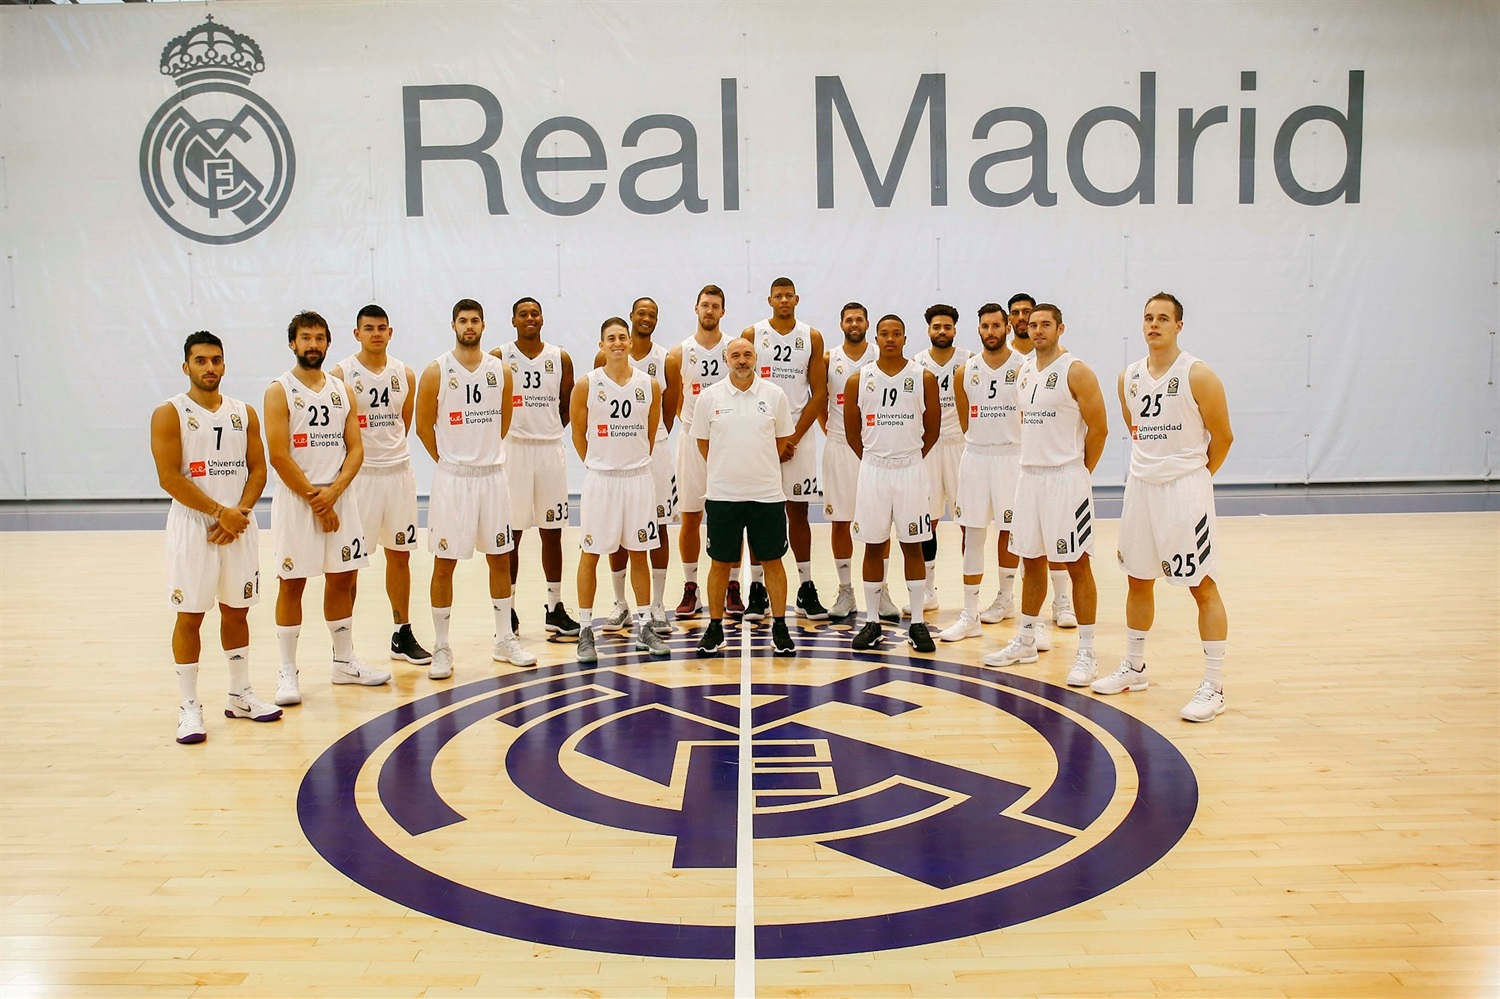 Real Madrid Media Day 2018 - EB18